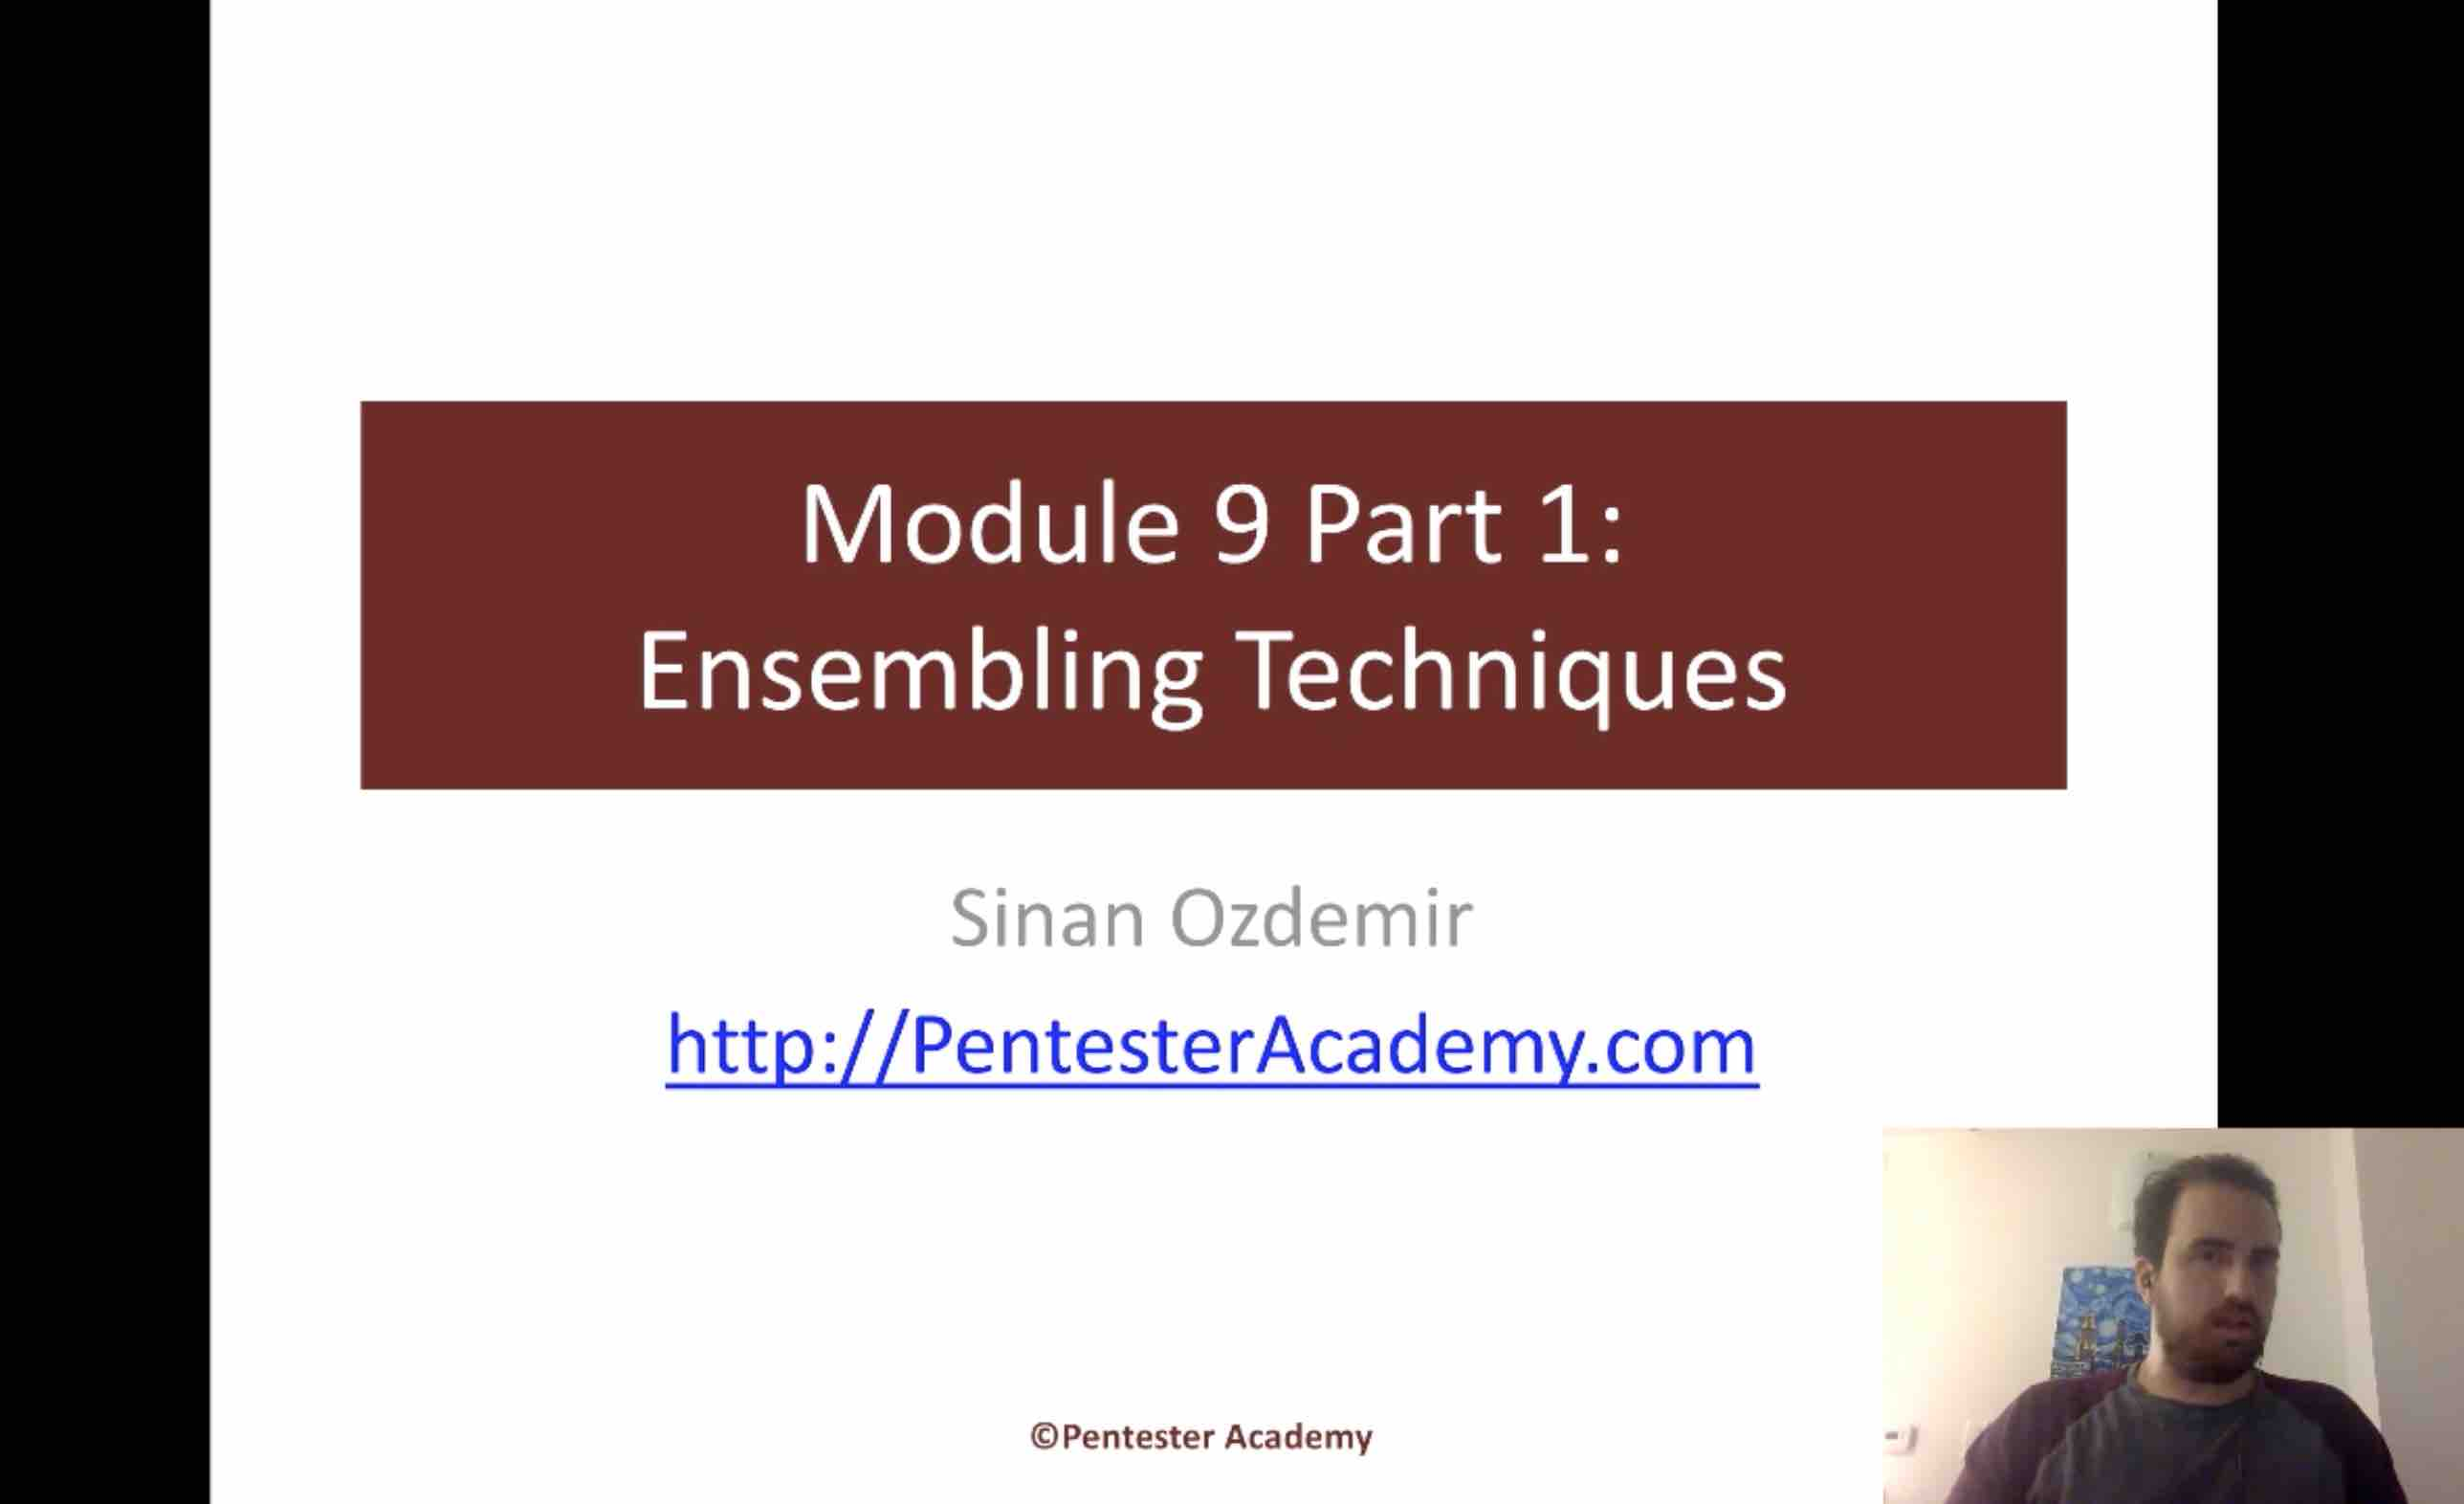 Module 9: Ensembling Techniques Part 1